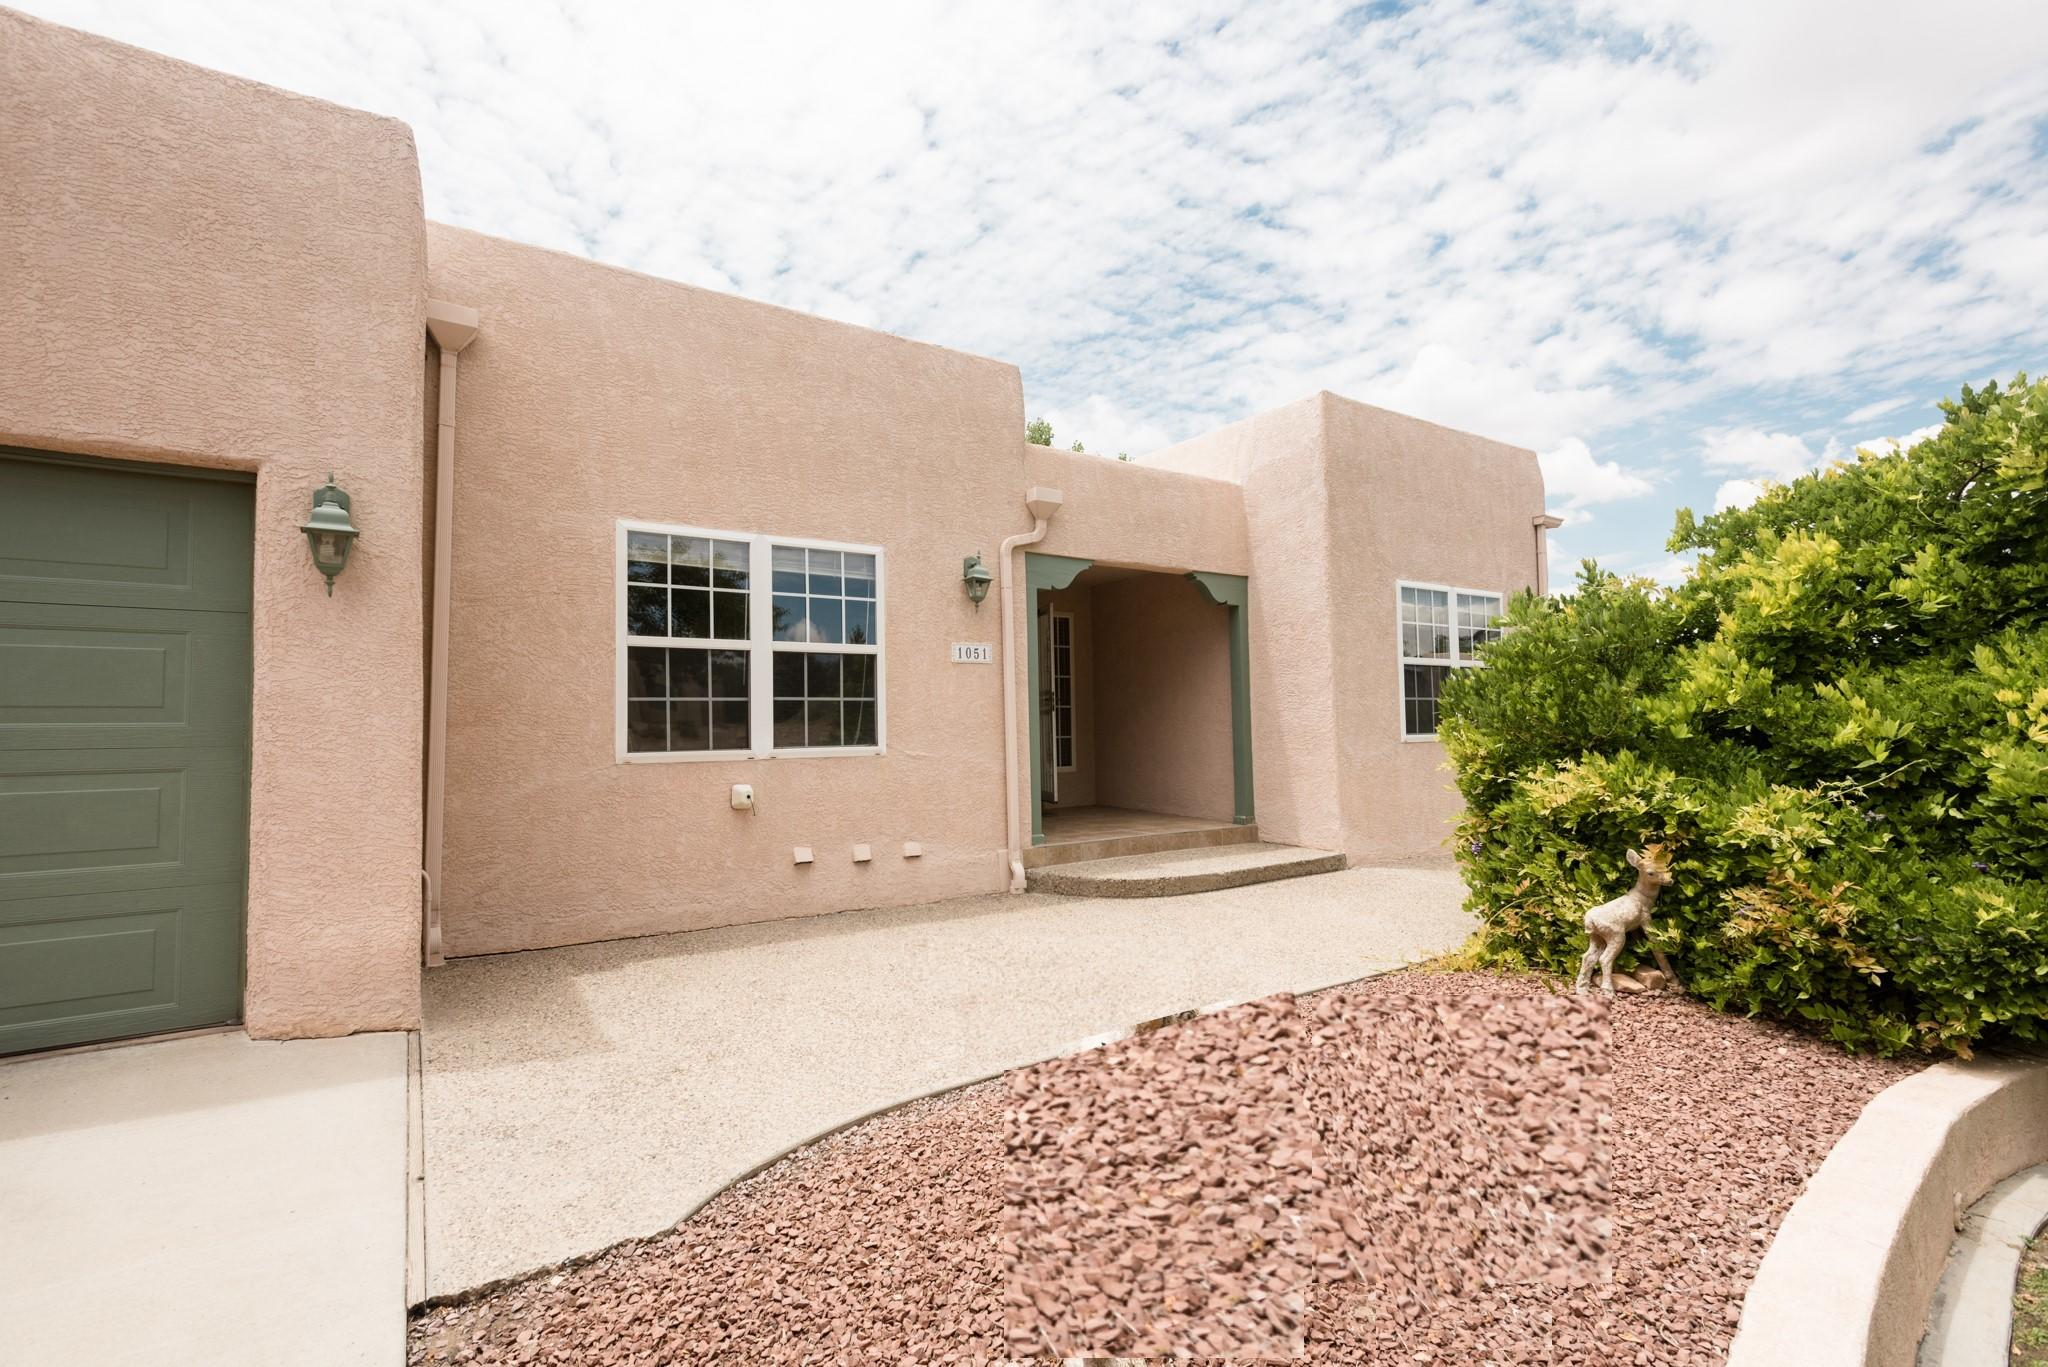 Beautiful custom built home located on a fully landscaped parcel with views of the Los Lunas Hill. Enjoy the sunsets from your covered back porches. Bring your RV, your trailers, and all your recreational vehicles this home has space. Three car garage with storage on main level and two car extended lower garage has large workshop not to mentioned the covered carport. The large open kitchen has an island and peninsula, lots of room to cook and bake all your culinary masterpieces. Home features a large laundry room with ample storage, family room, formal living, not to mention the downstairs recreational room with multiple doors that open up to the backyard. Home is within 5 minutes of shopping center, parks, schools and highway. We have 3 different Sq Ft measurements ranging from 4019-4346.